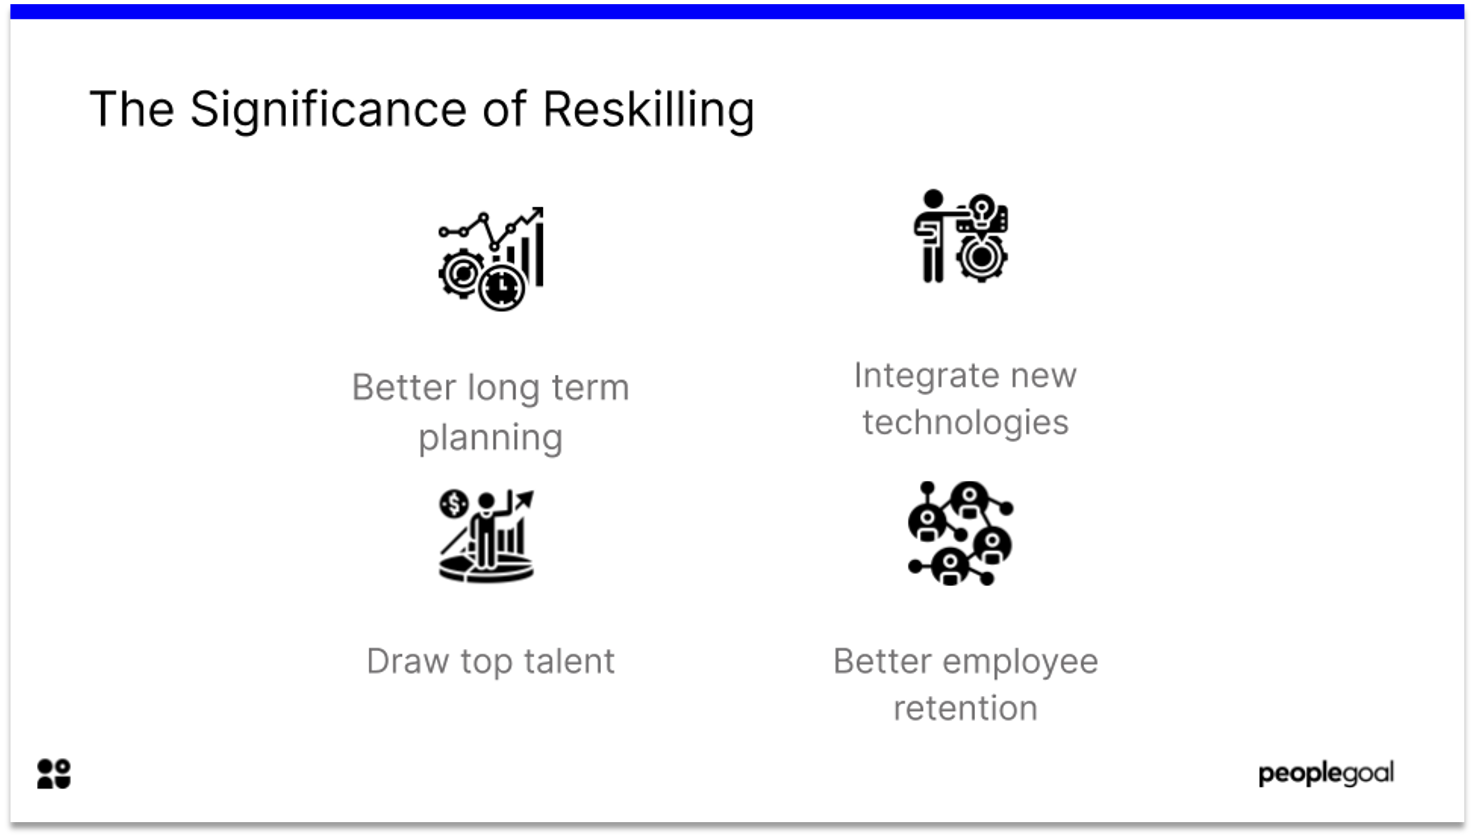 significance of reskilling